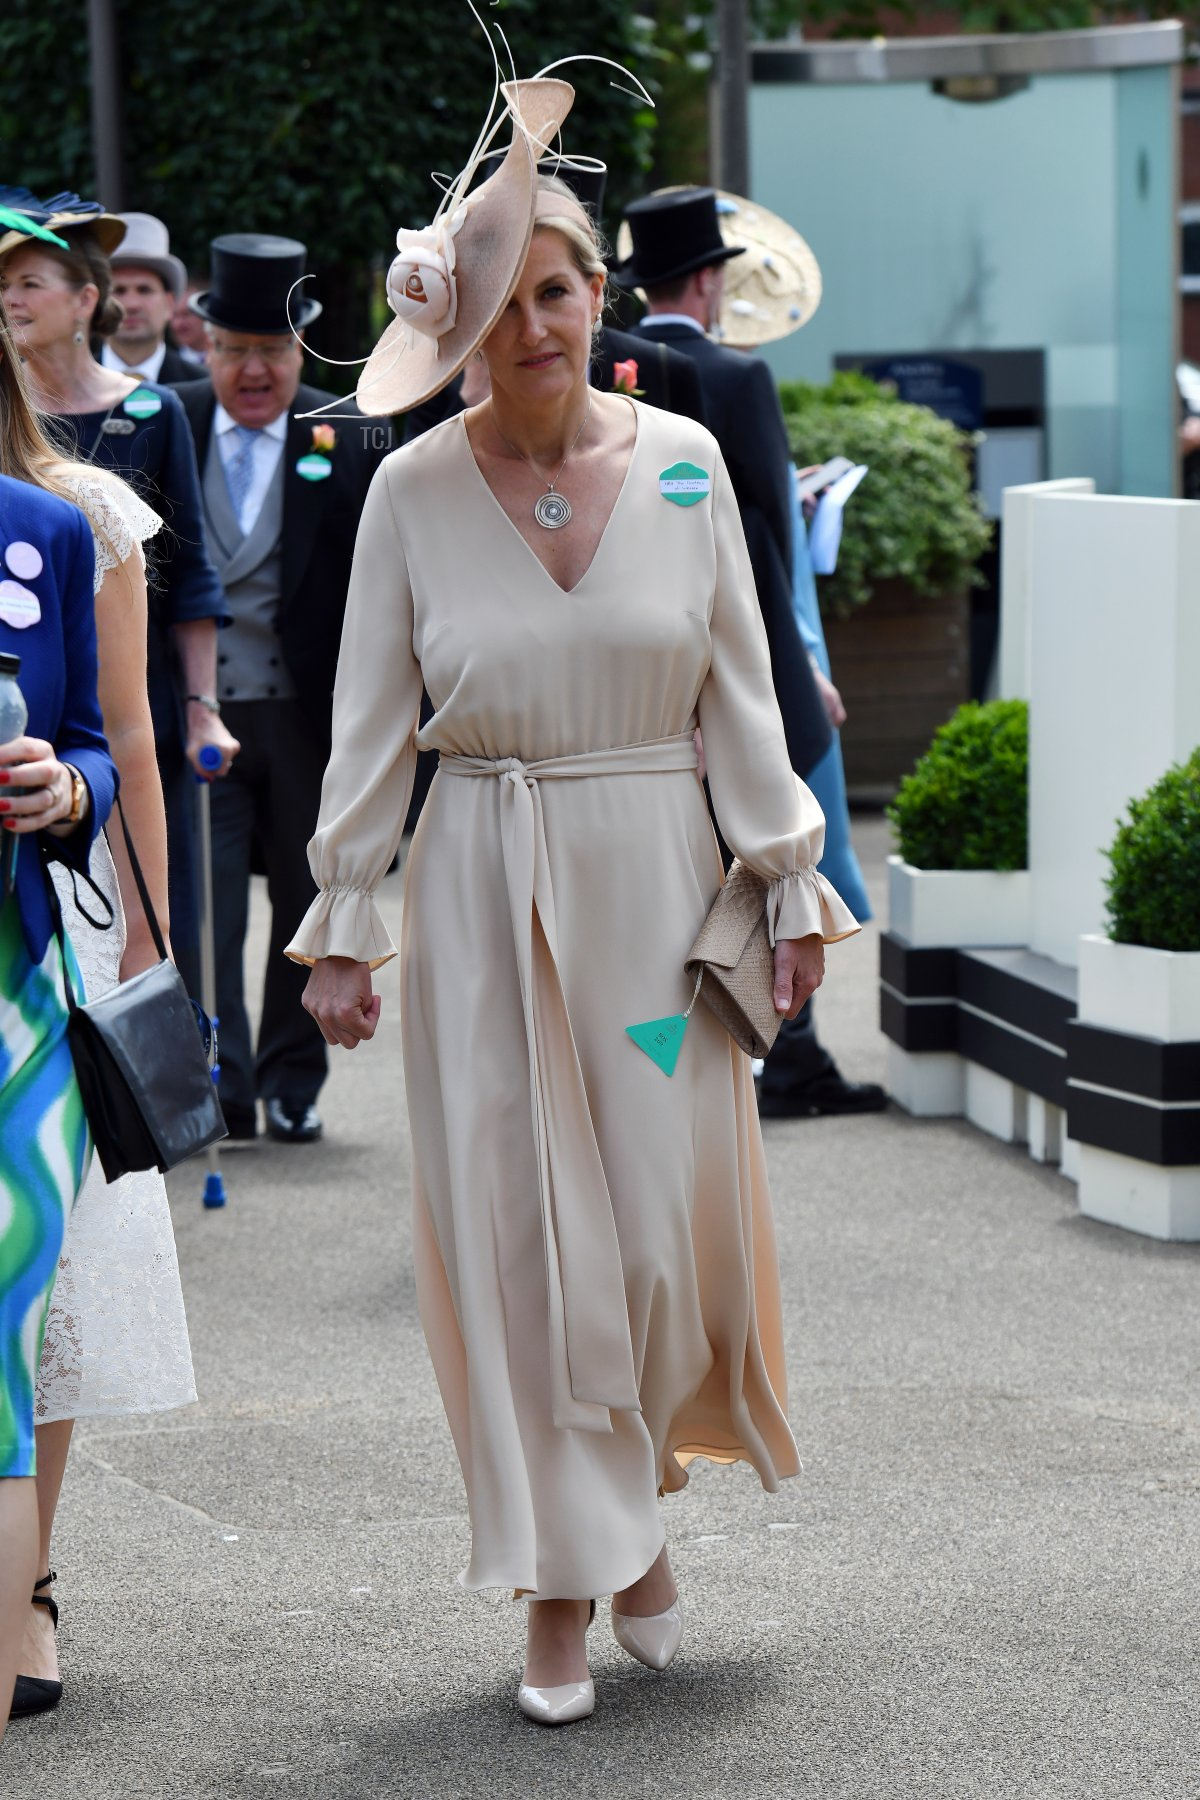 Sophie, Countess of Wessex is seen during Royal Ascot 2021 at Ascot Racecourse on June 15, 2021 in Ascot, England